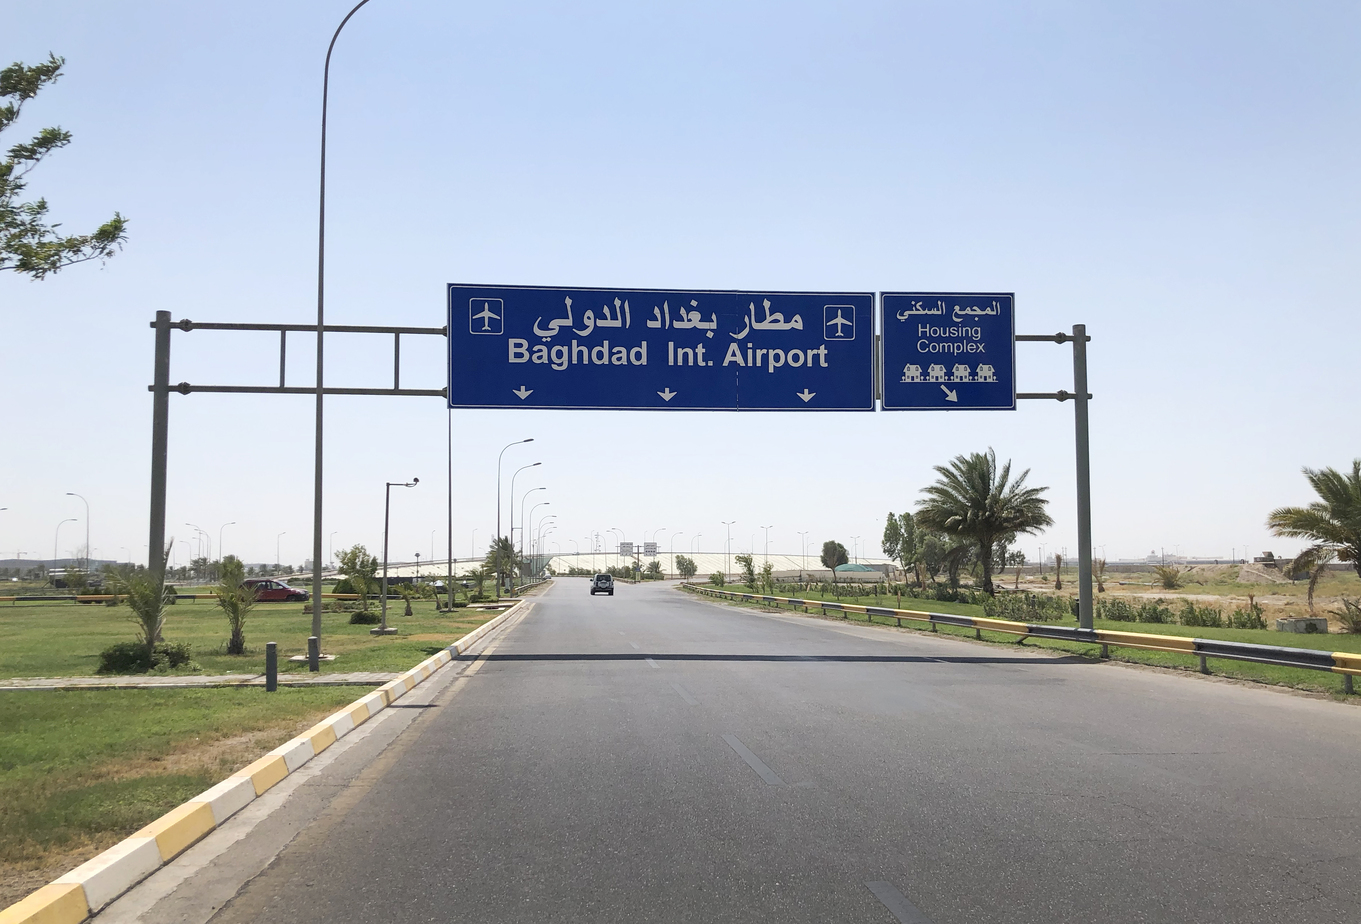 Iraqi government implements measures to improve access to Baghdad International Airport %D9%85%D8%B7%D8%A7%D8%B1%D9%A2